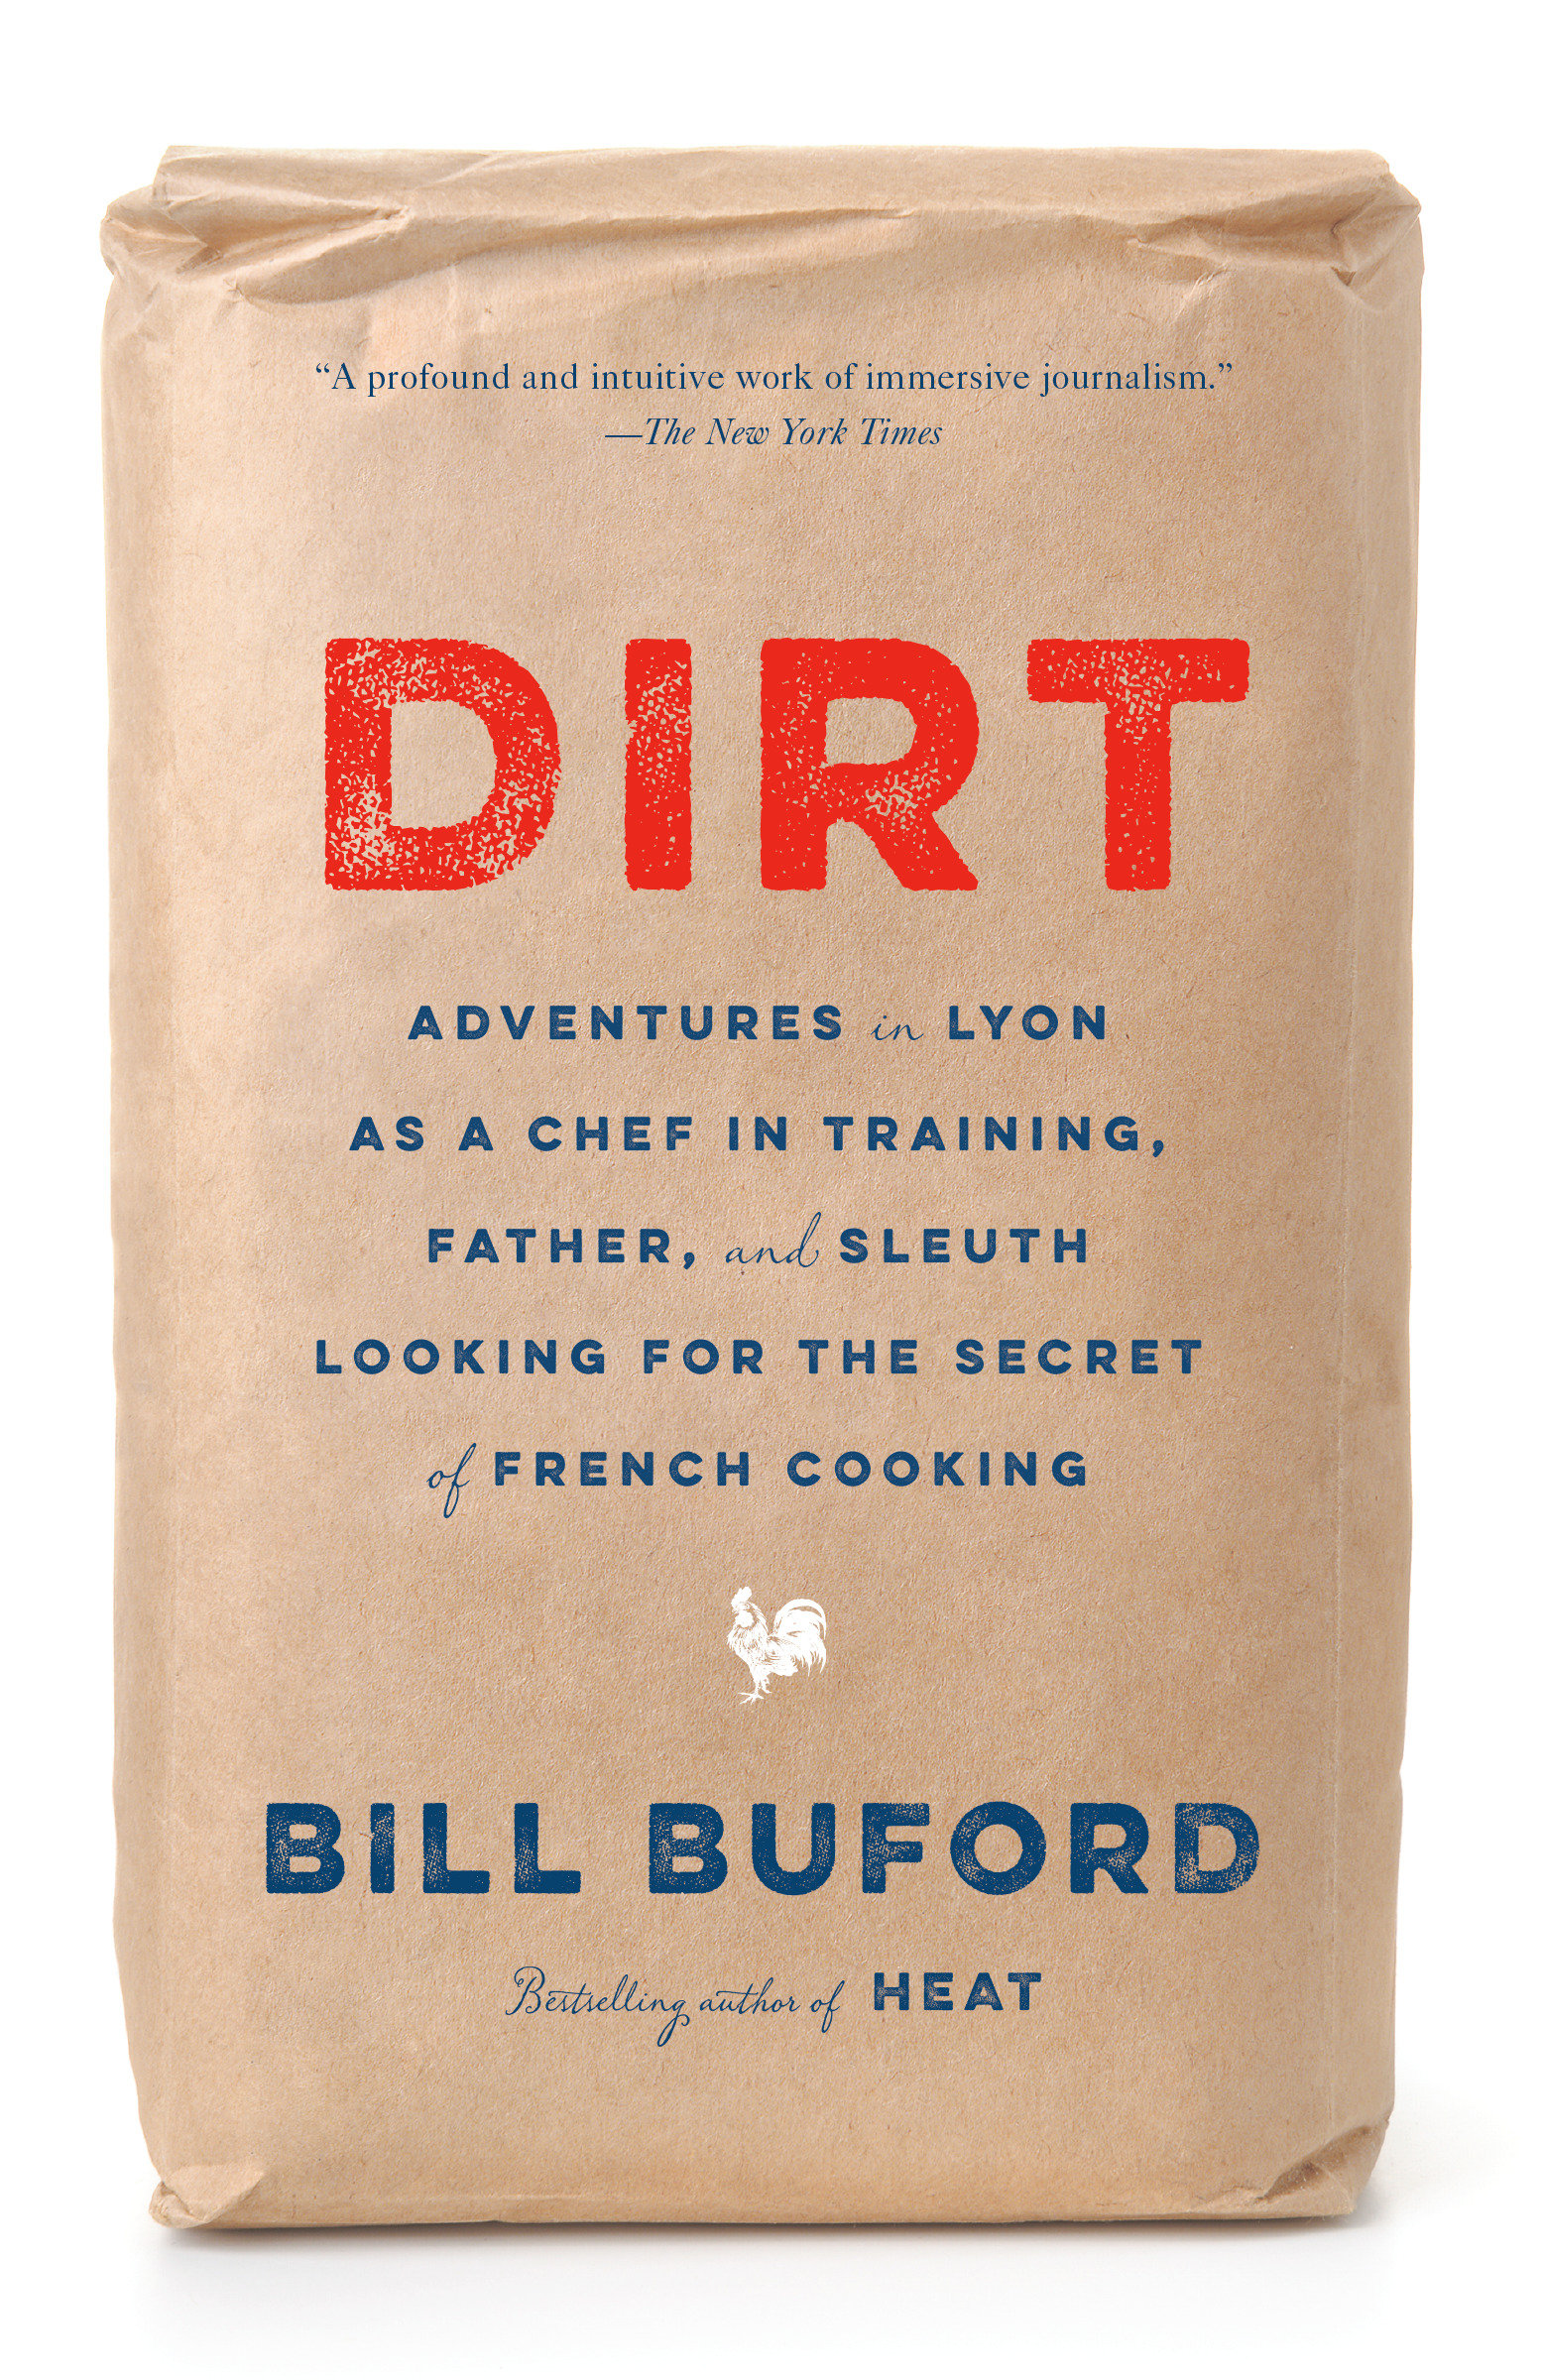 Dirt Adventures in Lyon as a Chef in Training, Father, and Sleuth Looking for the Secret of French Cooking